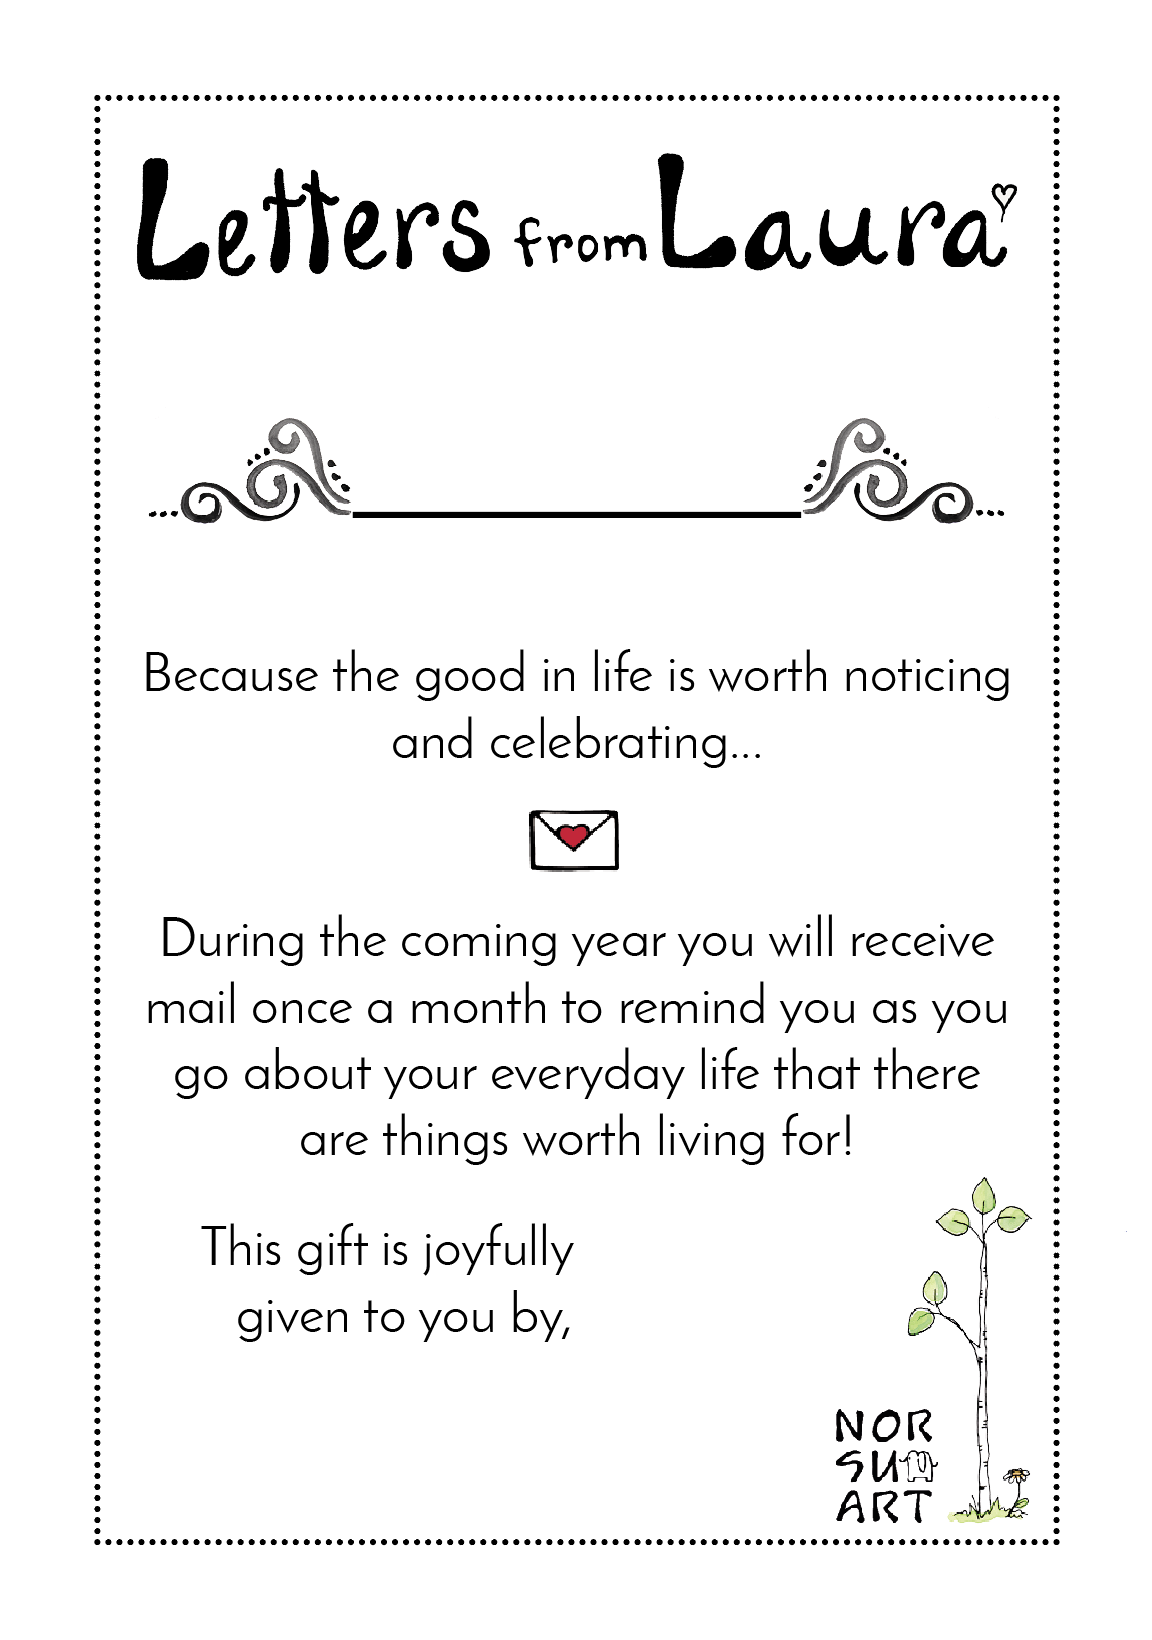 If you order for a friend, you will receive this coupon by email, so you can give it as an explanation for why they will receive Letters from Laura! - Ah, to get mail! What wonderful expectation!